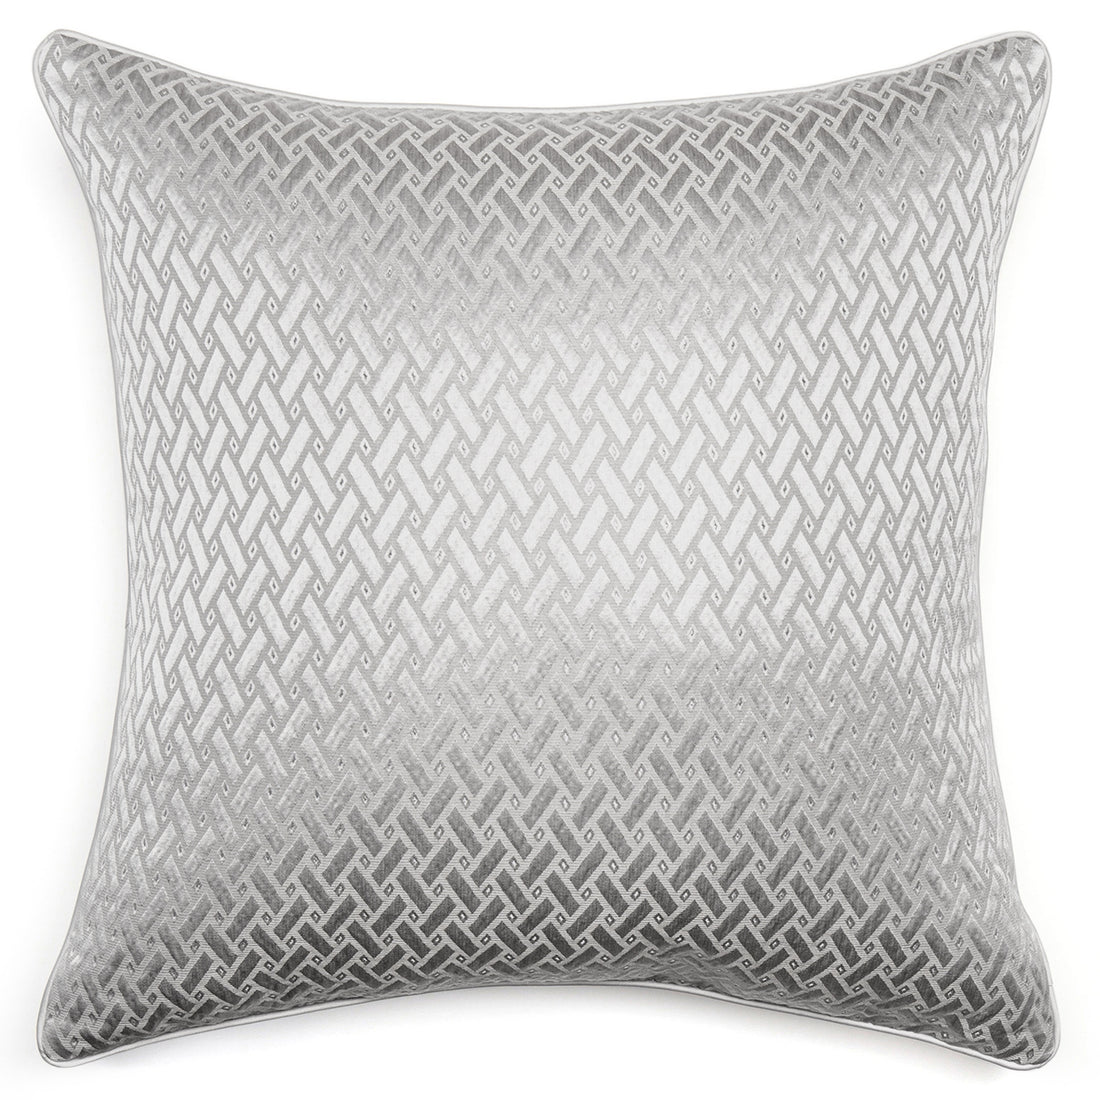 Emery Laurent Decorative Pillow